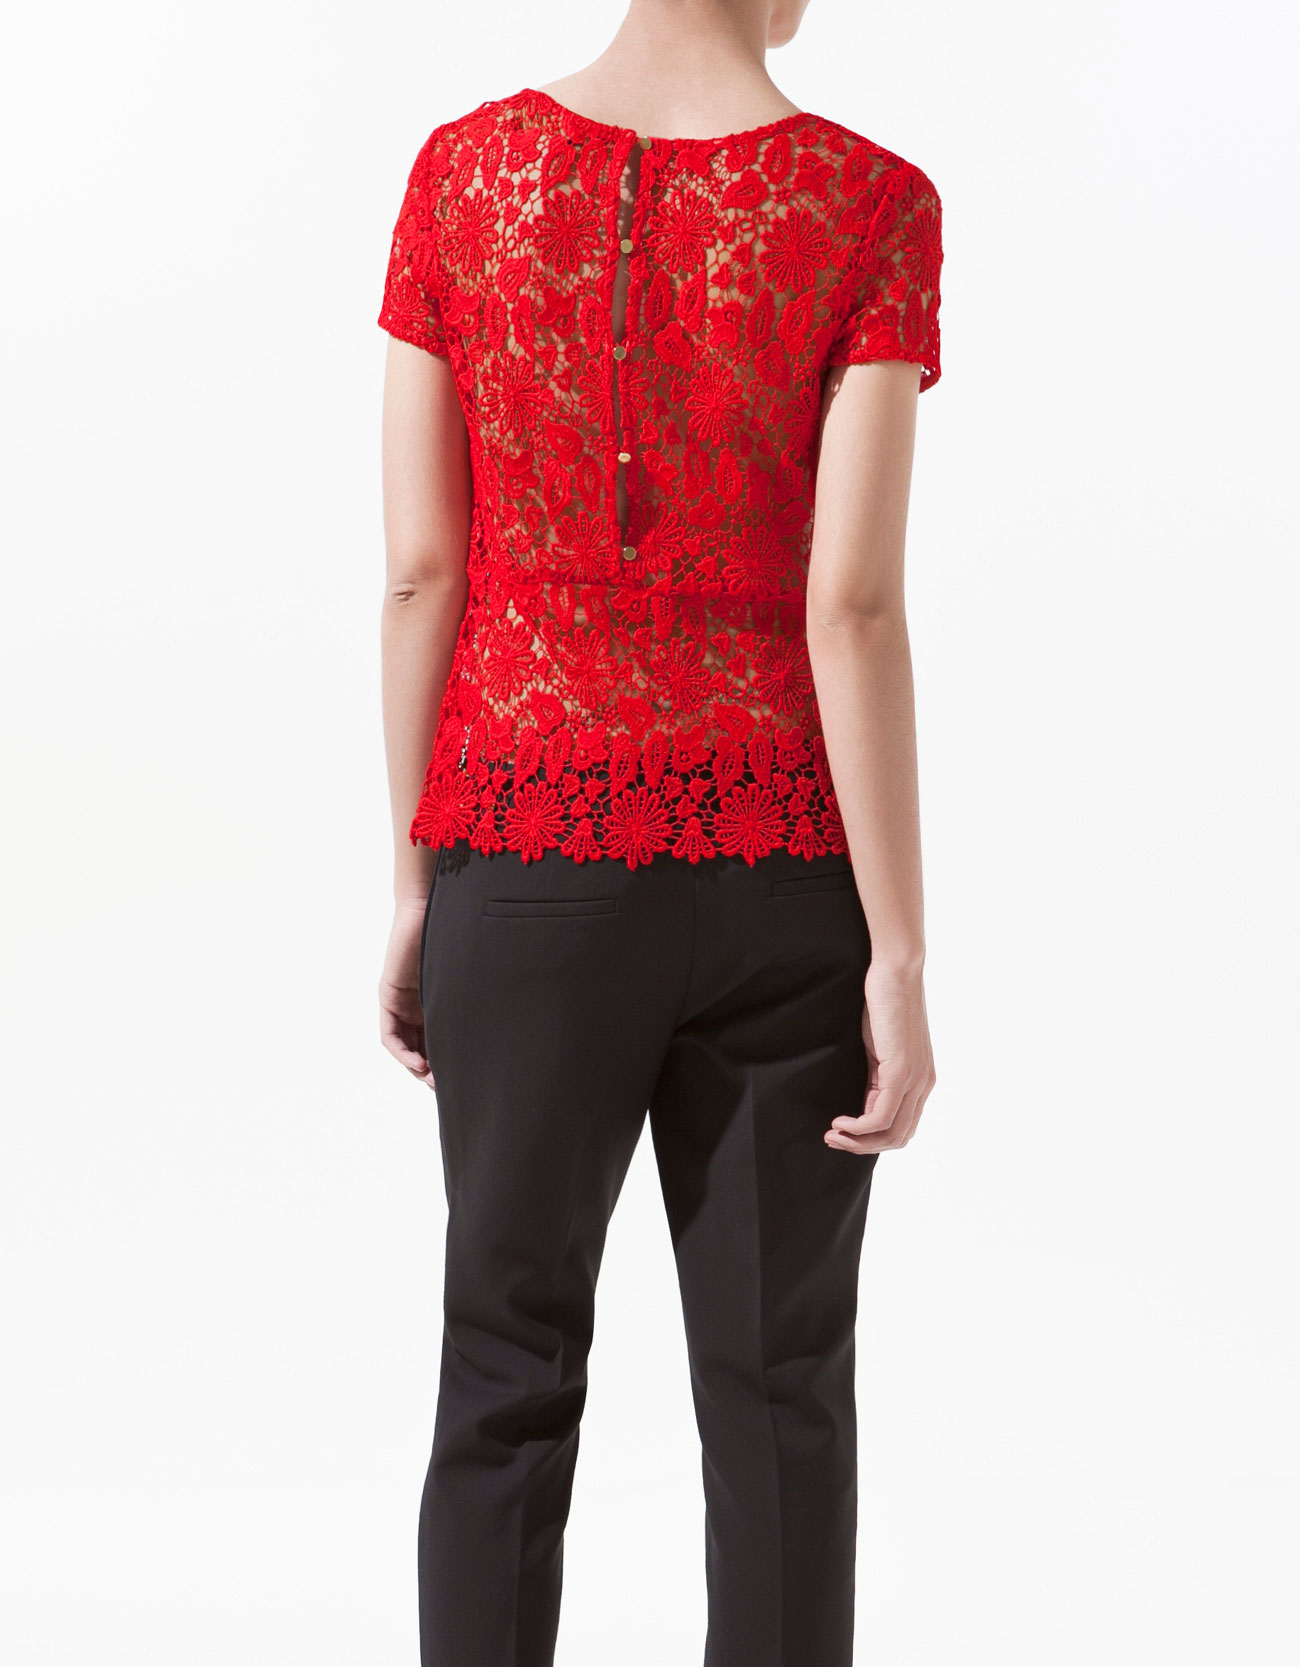 Zara Lace Top with Frill in Red | Lyst